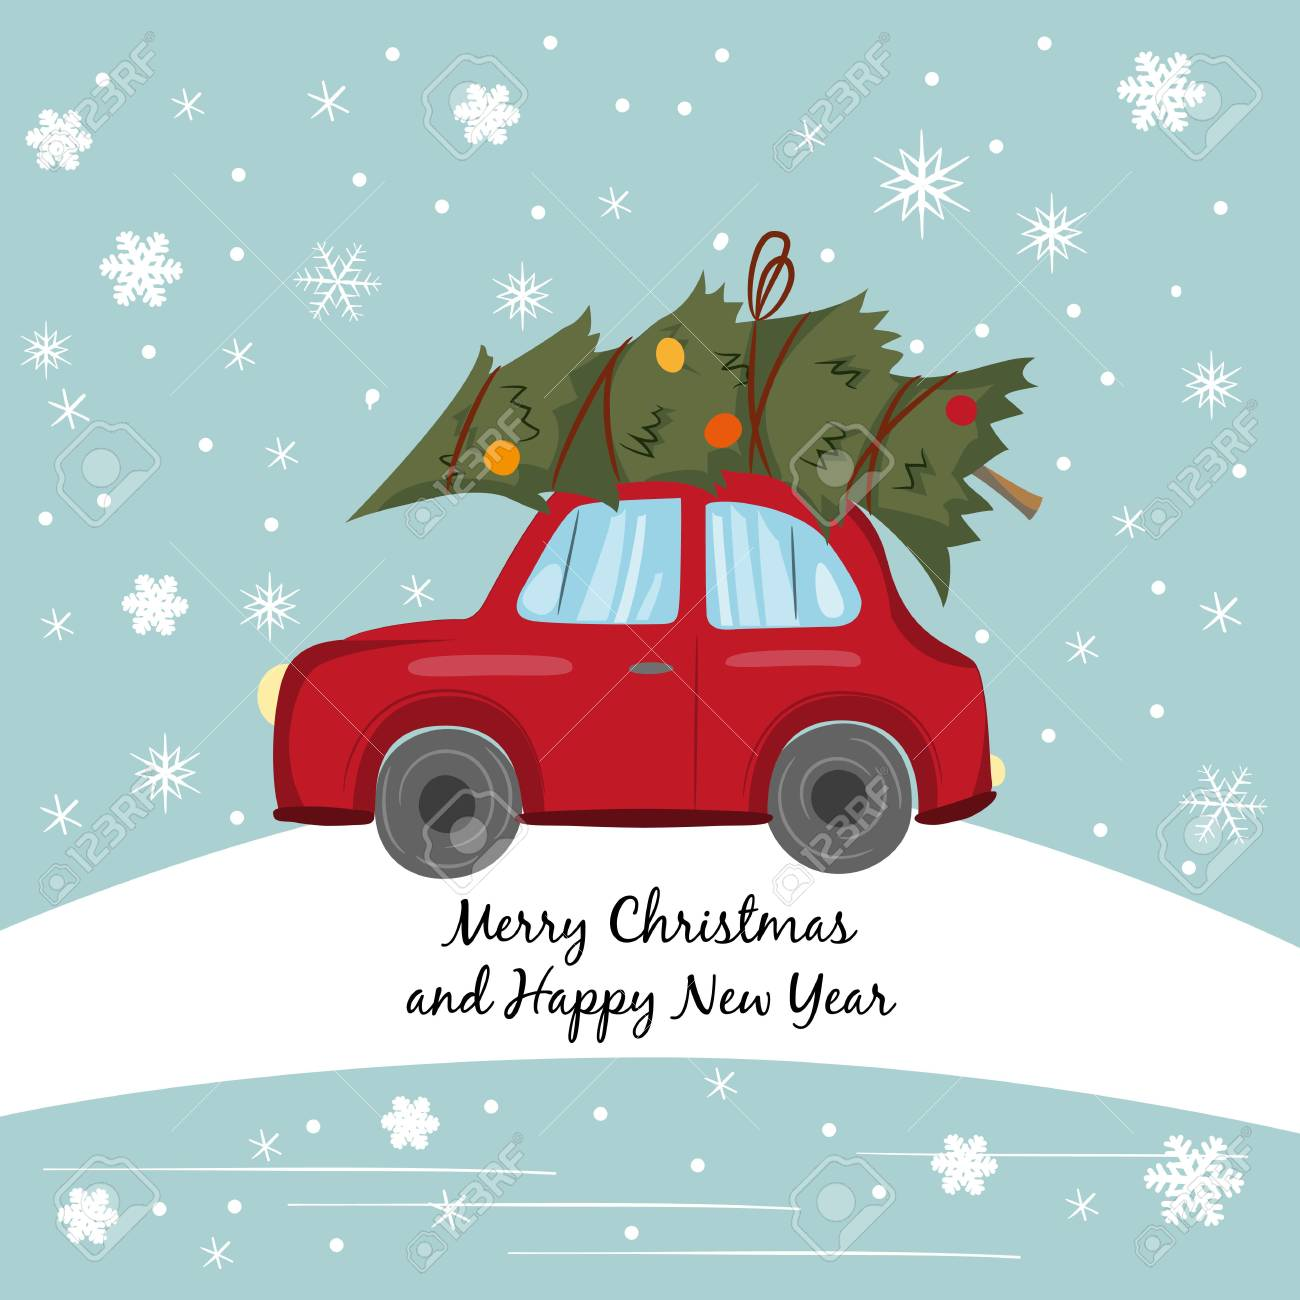 Car Christmas Tree.Red Car With Christmas Tree On The Winter Background